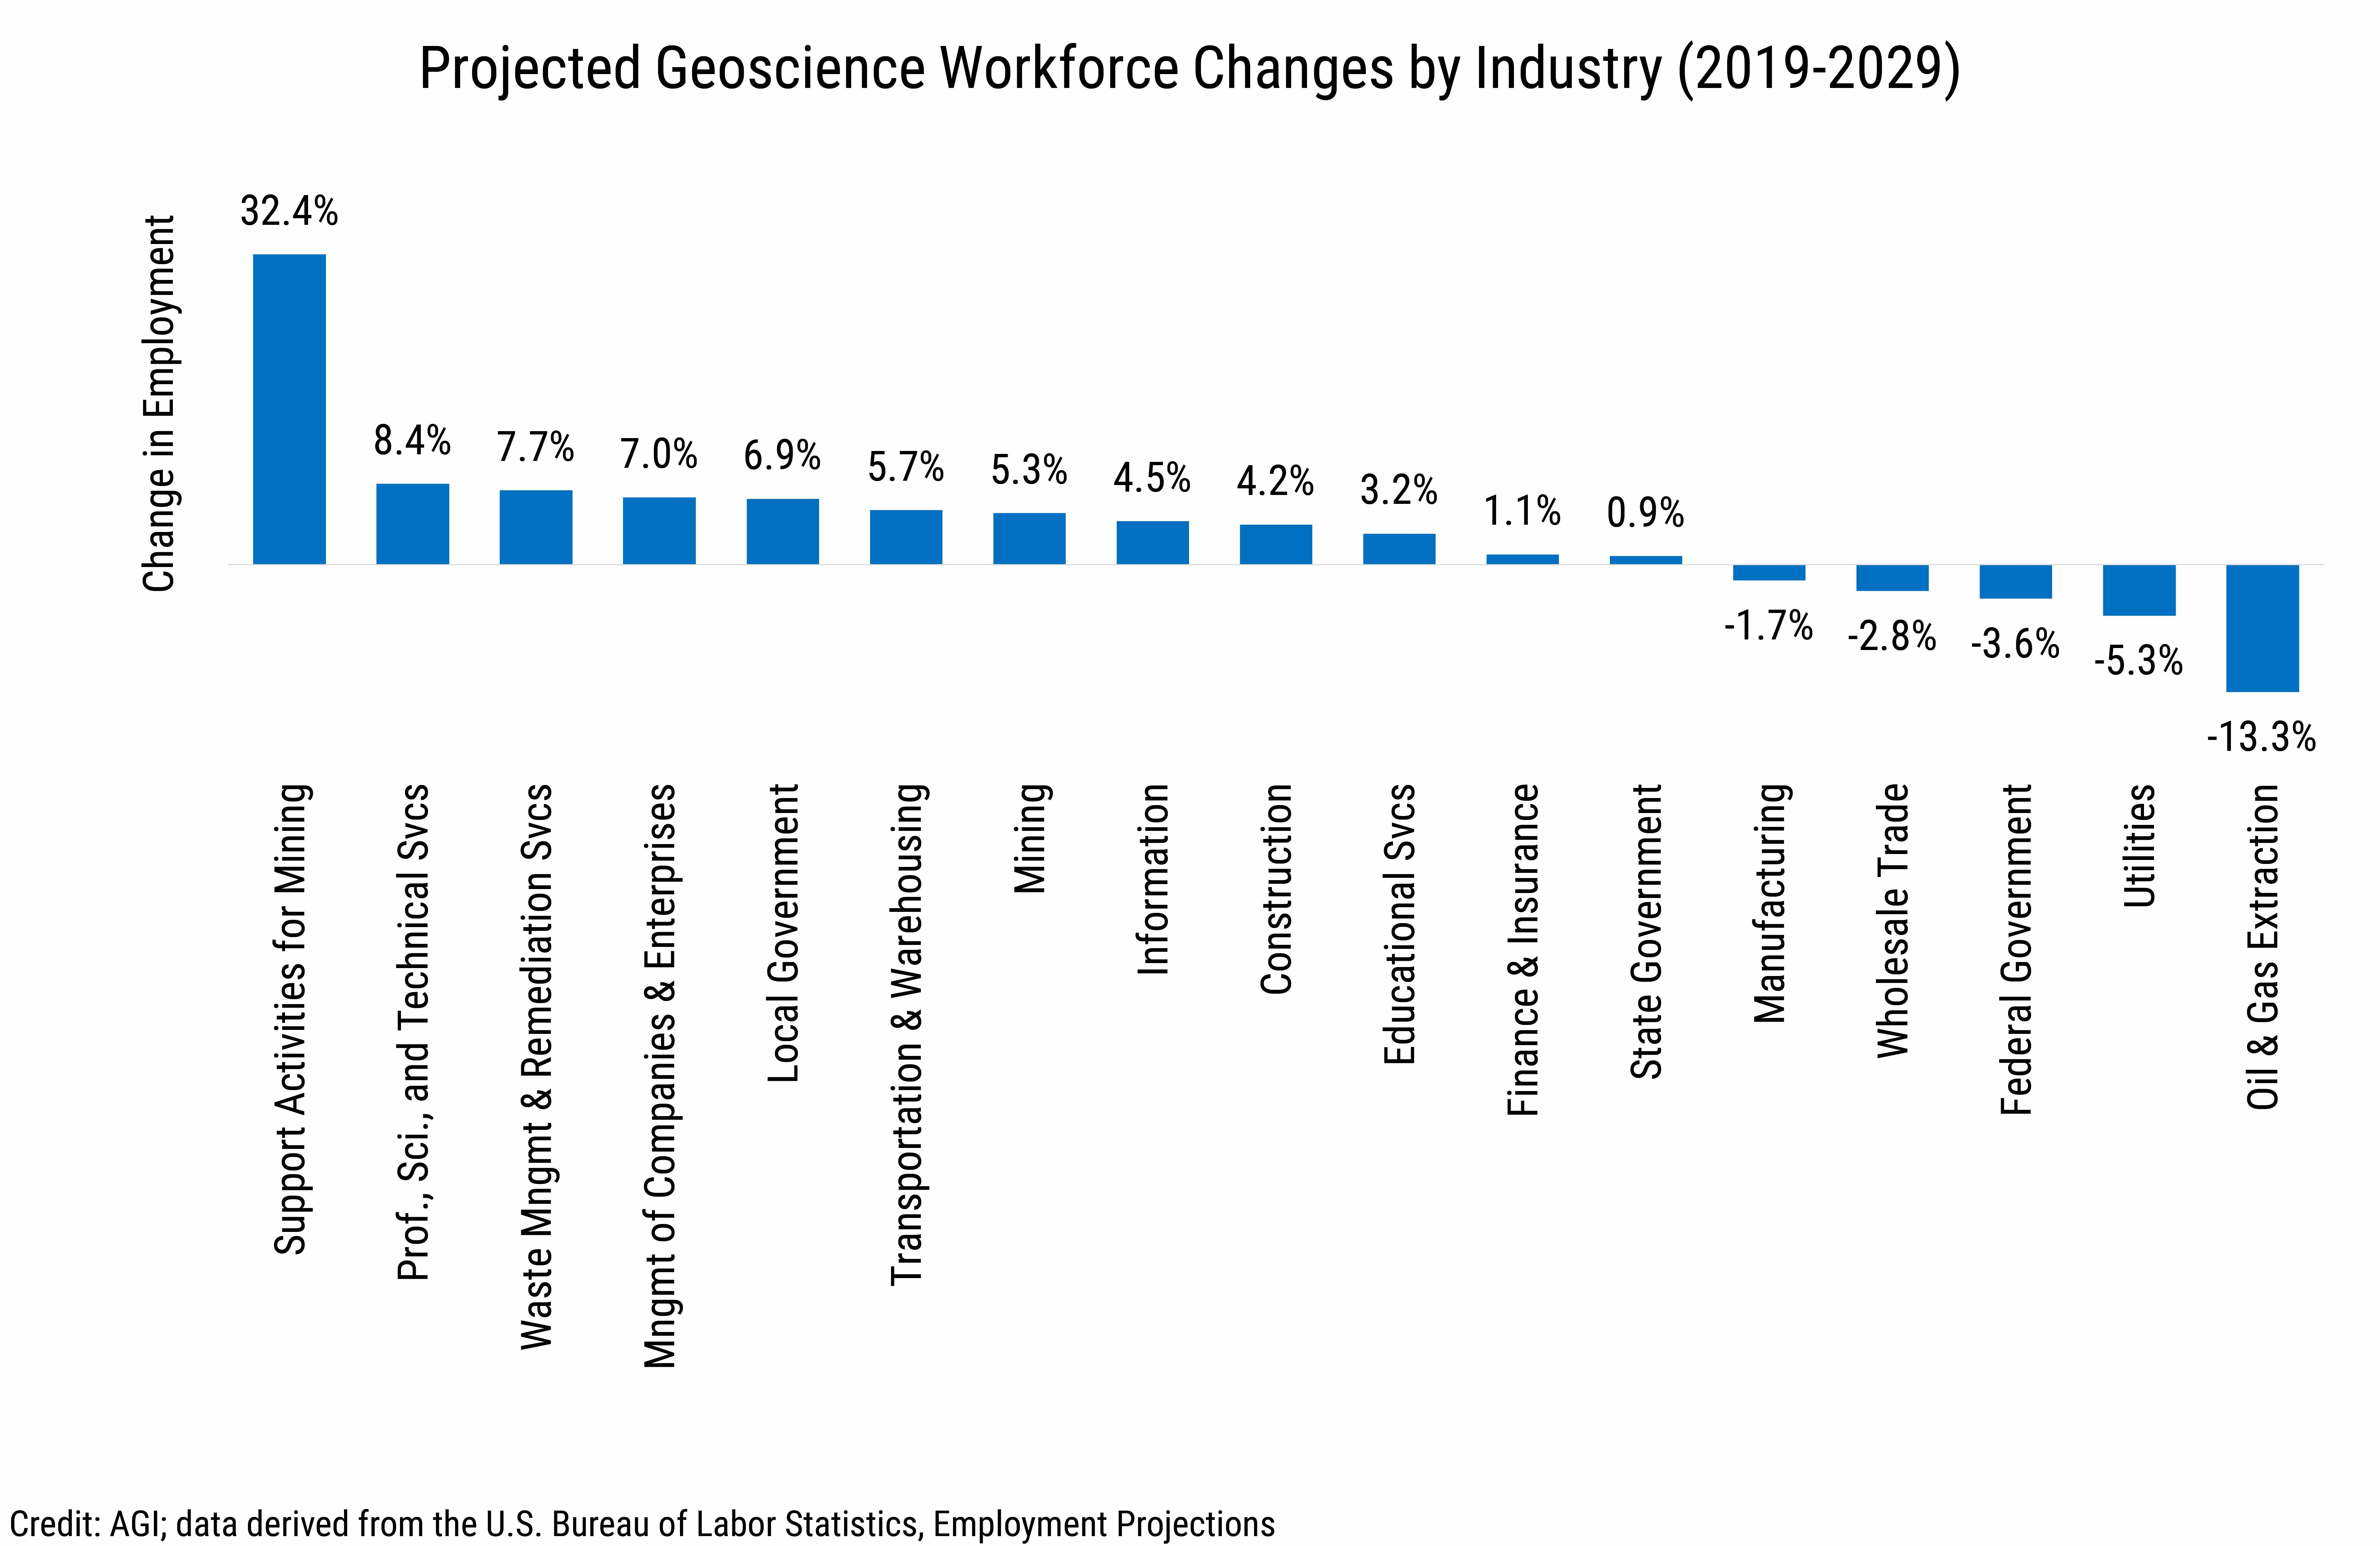 DB2020-025 chart 02: Projected Geoscience Workforce Changes by Industry (2019-2029 (Credit: AGI; data derived from the U.S. Bureau of Labor Statistics, Employment Projections)